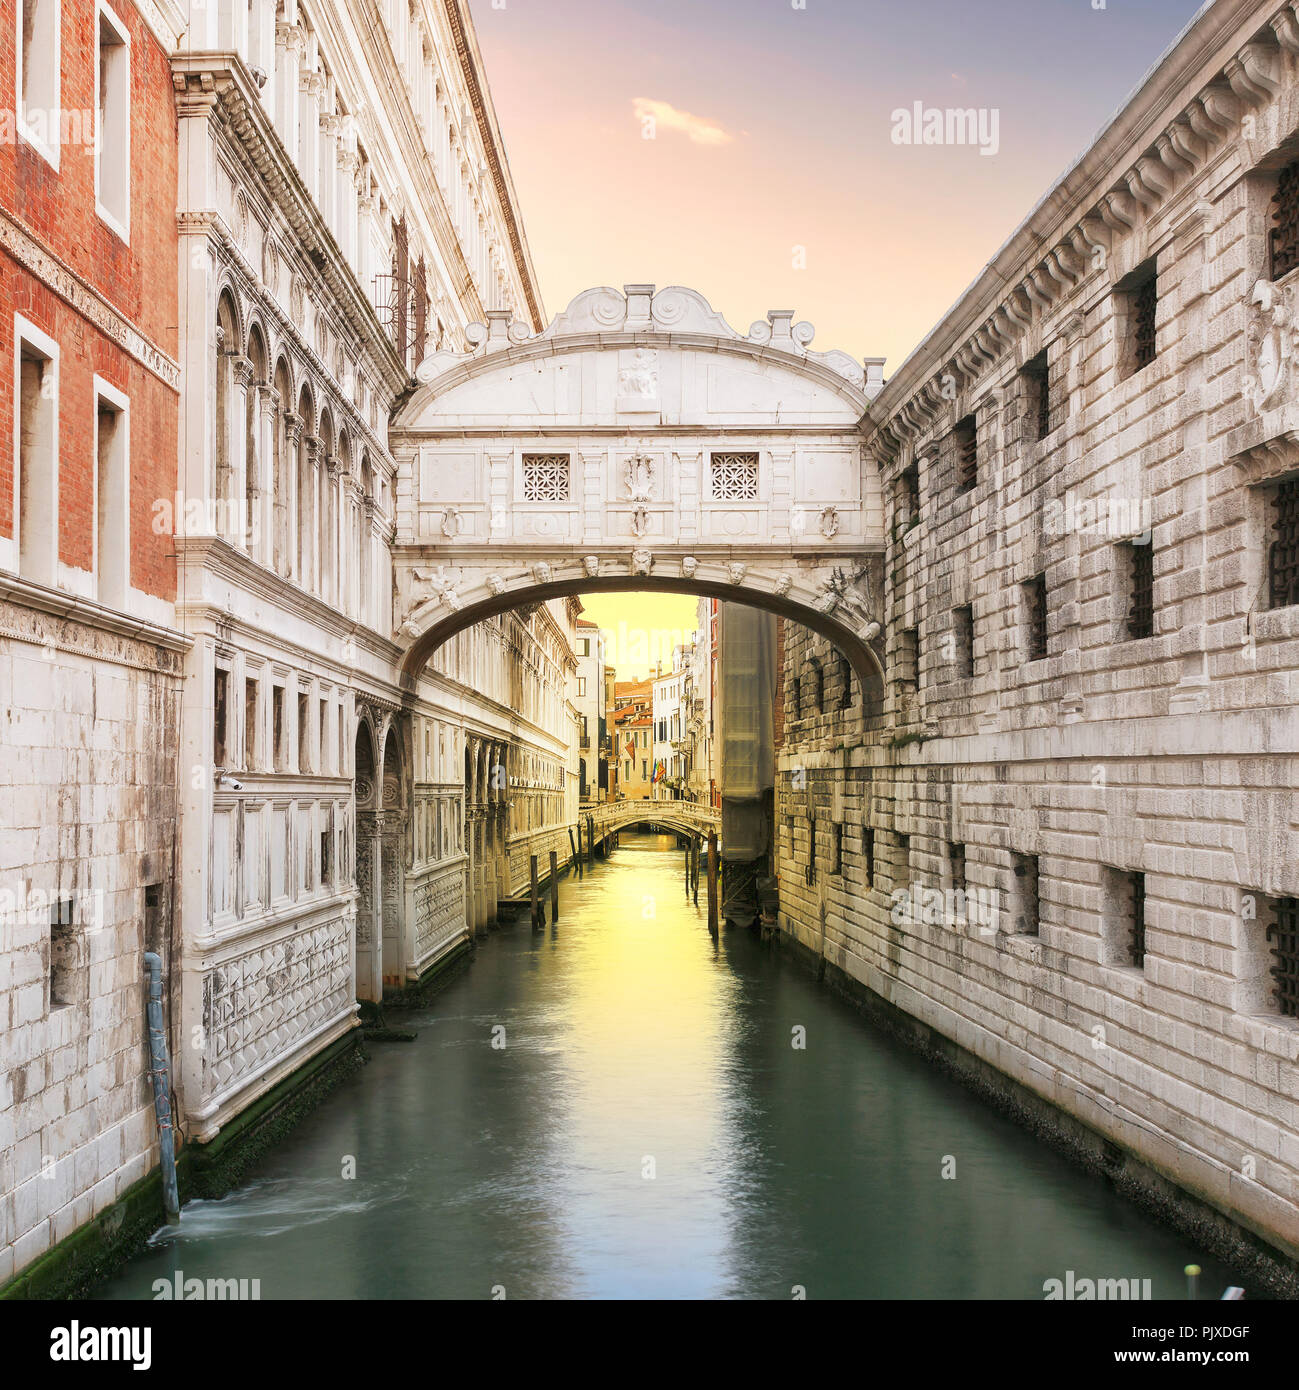 Sunrise at Bridge of Sighs, Venice, Italy. - Stock Image